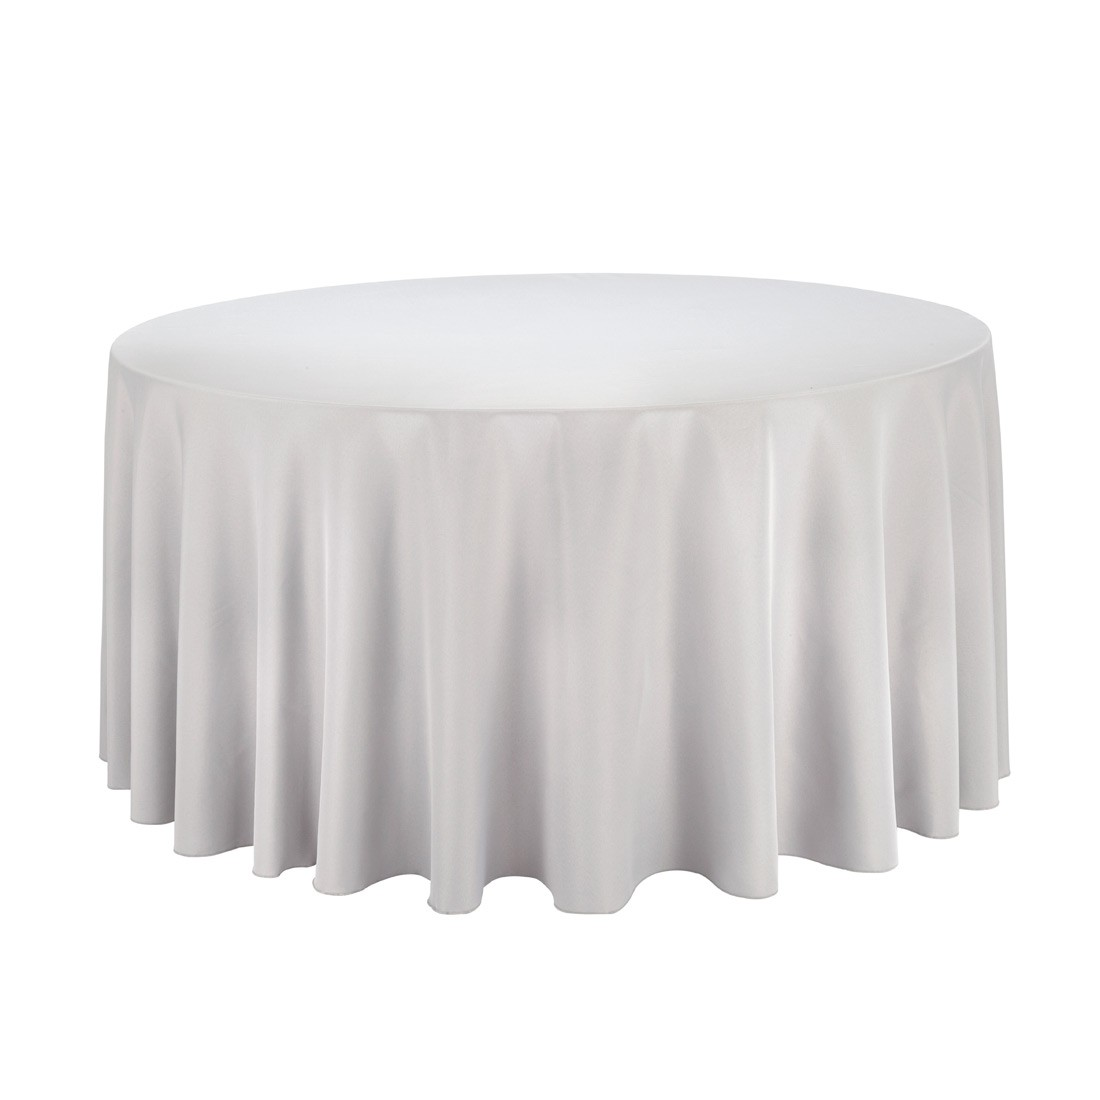 mesmerizing 120 round tablecloth with round polyester